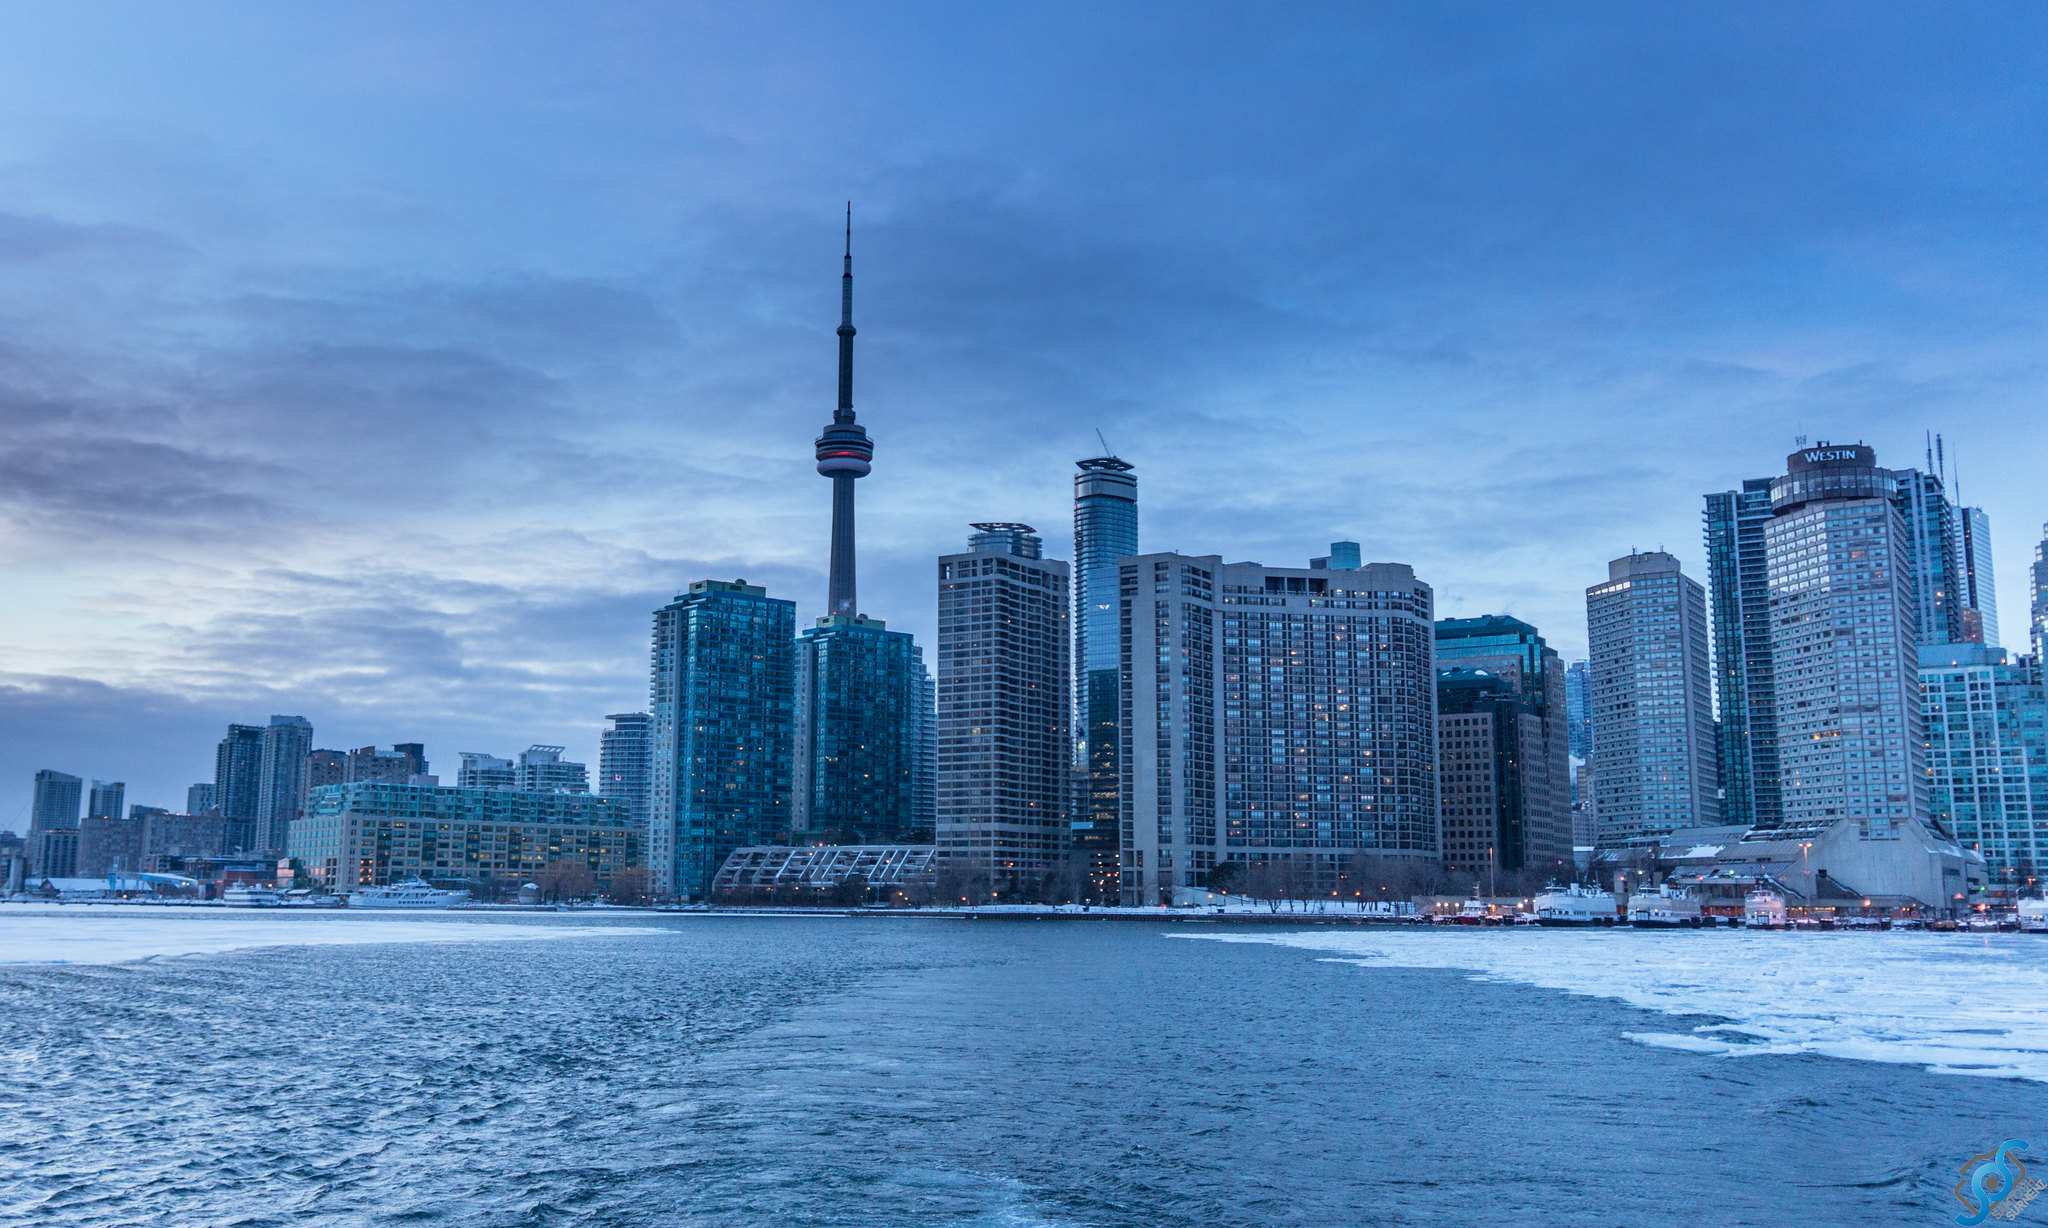 Toronto skyline captured from the ferry on frozen lake Ontario